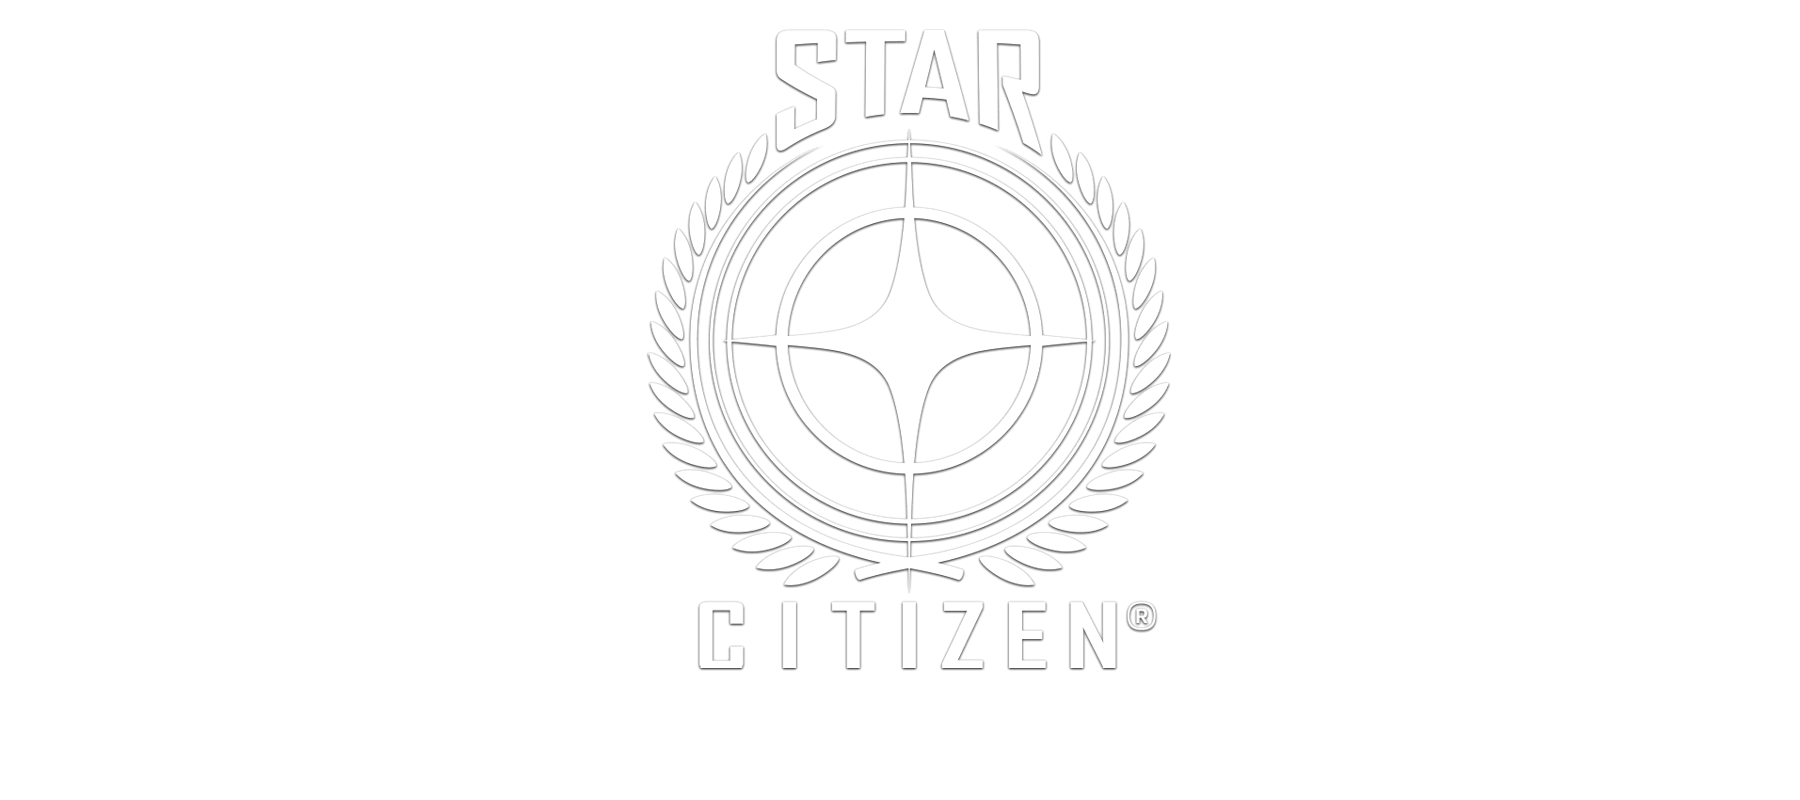 Star Citizen : Theaters of War (Working Title)